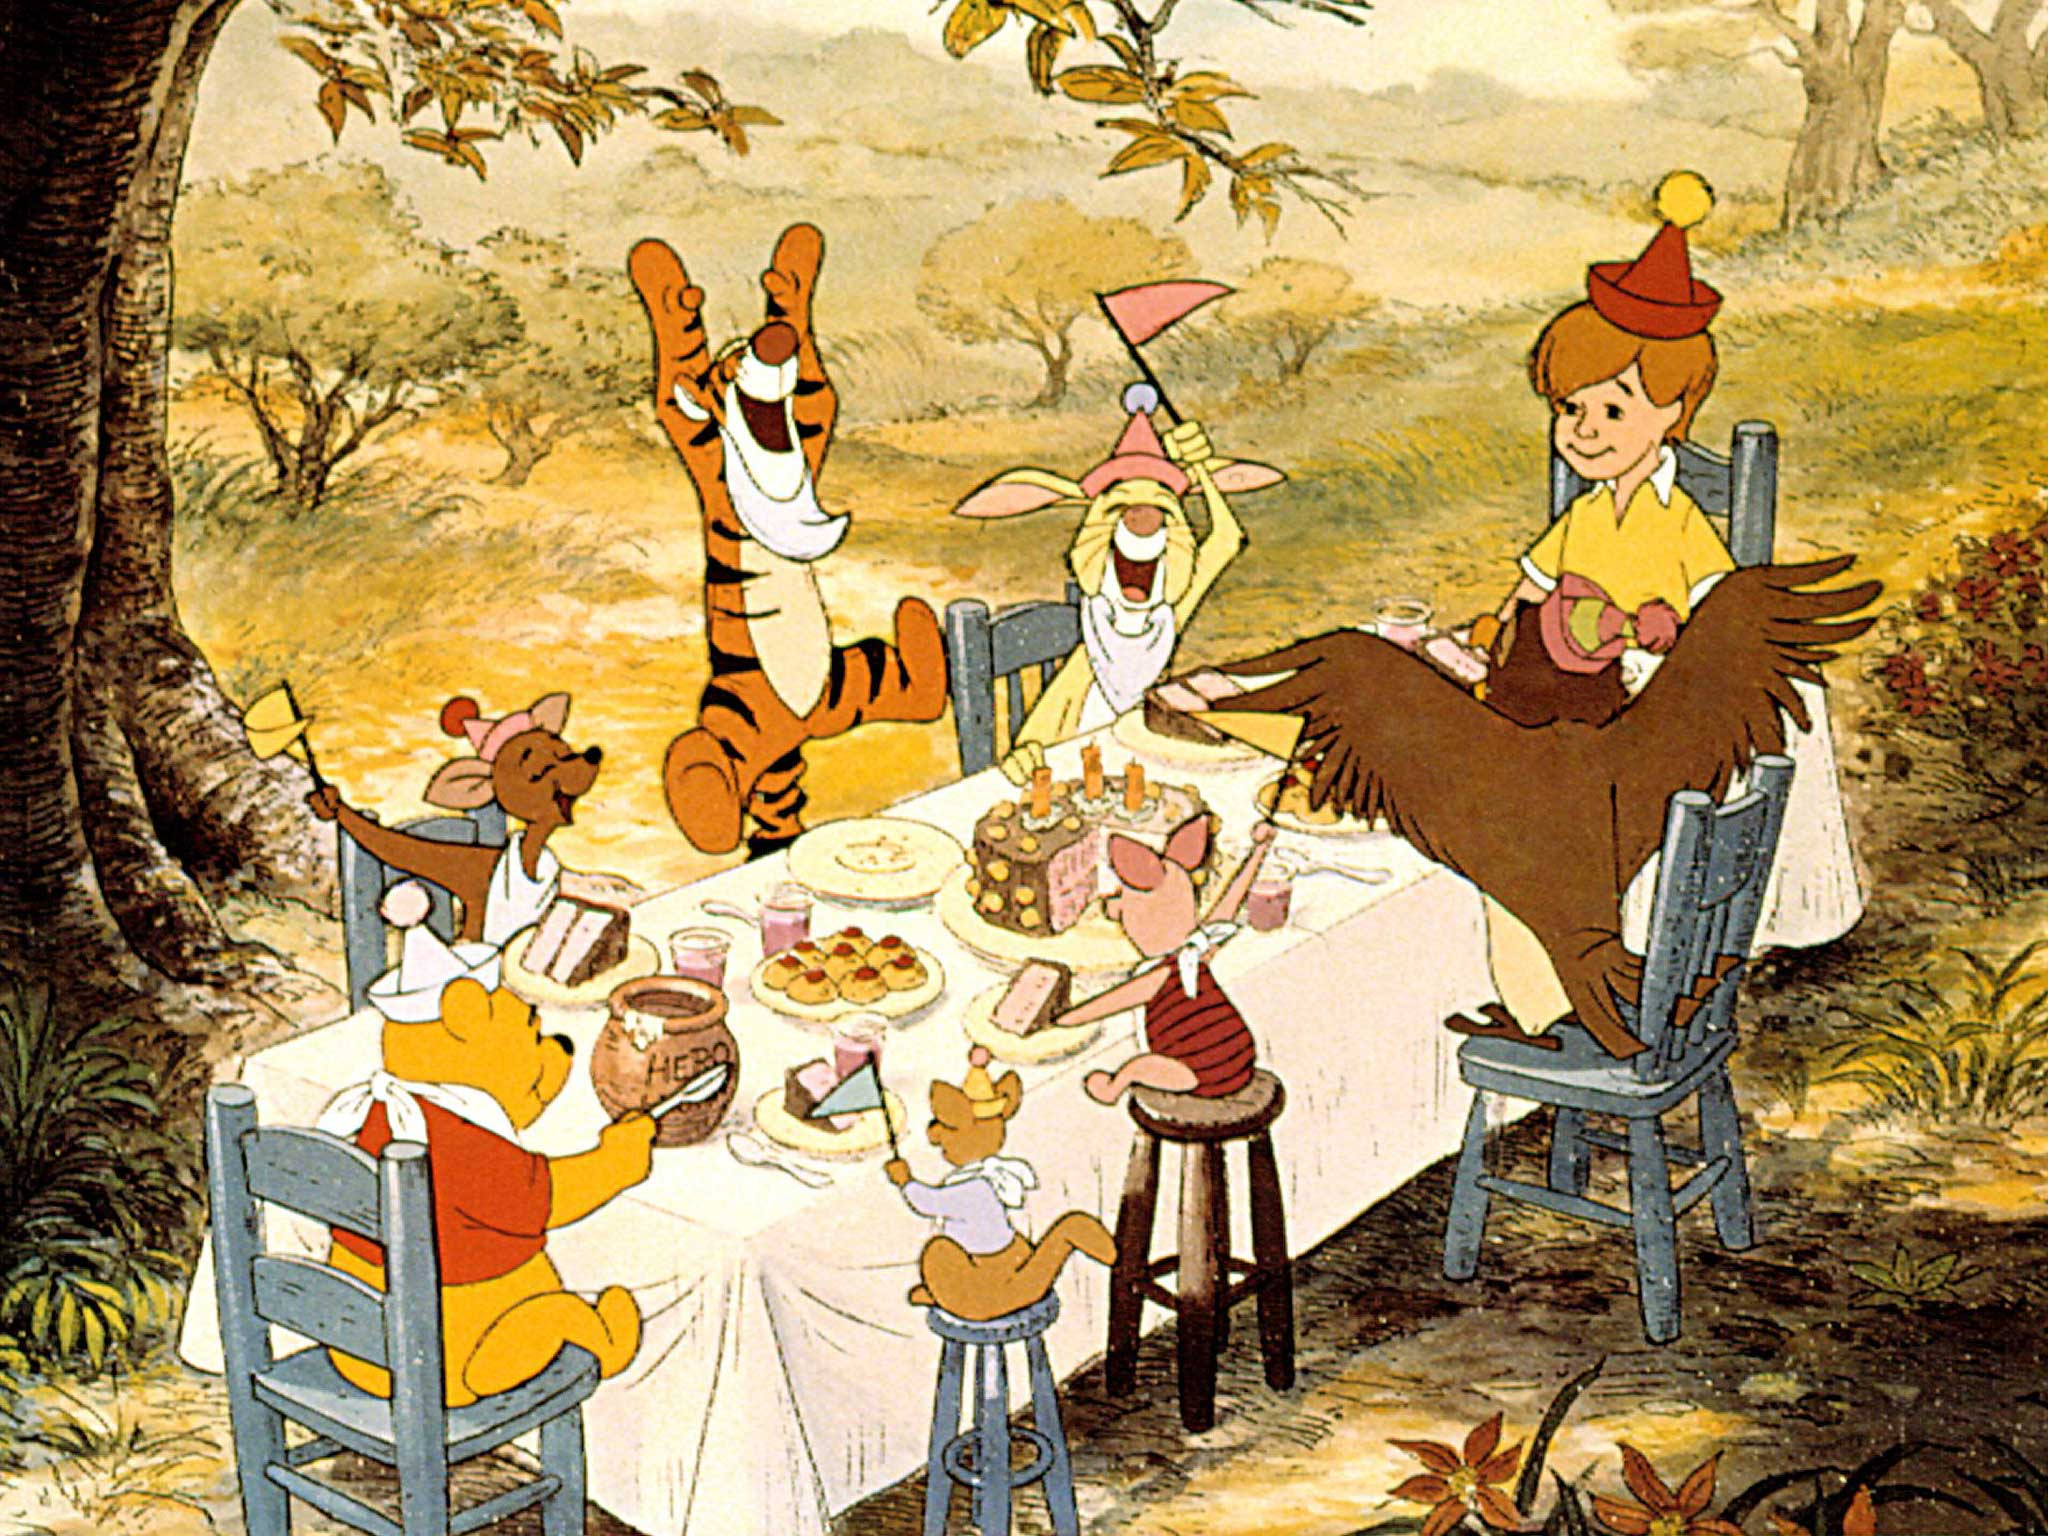 Good Quotes In The Story The Yellow Wallpaper Goodbye Christopher Robin Domhnall Gleeson To Play Winnie